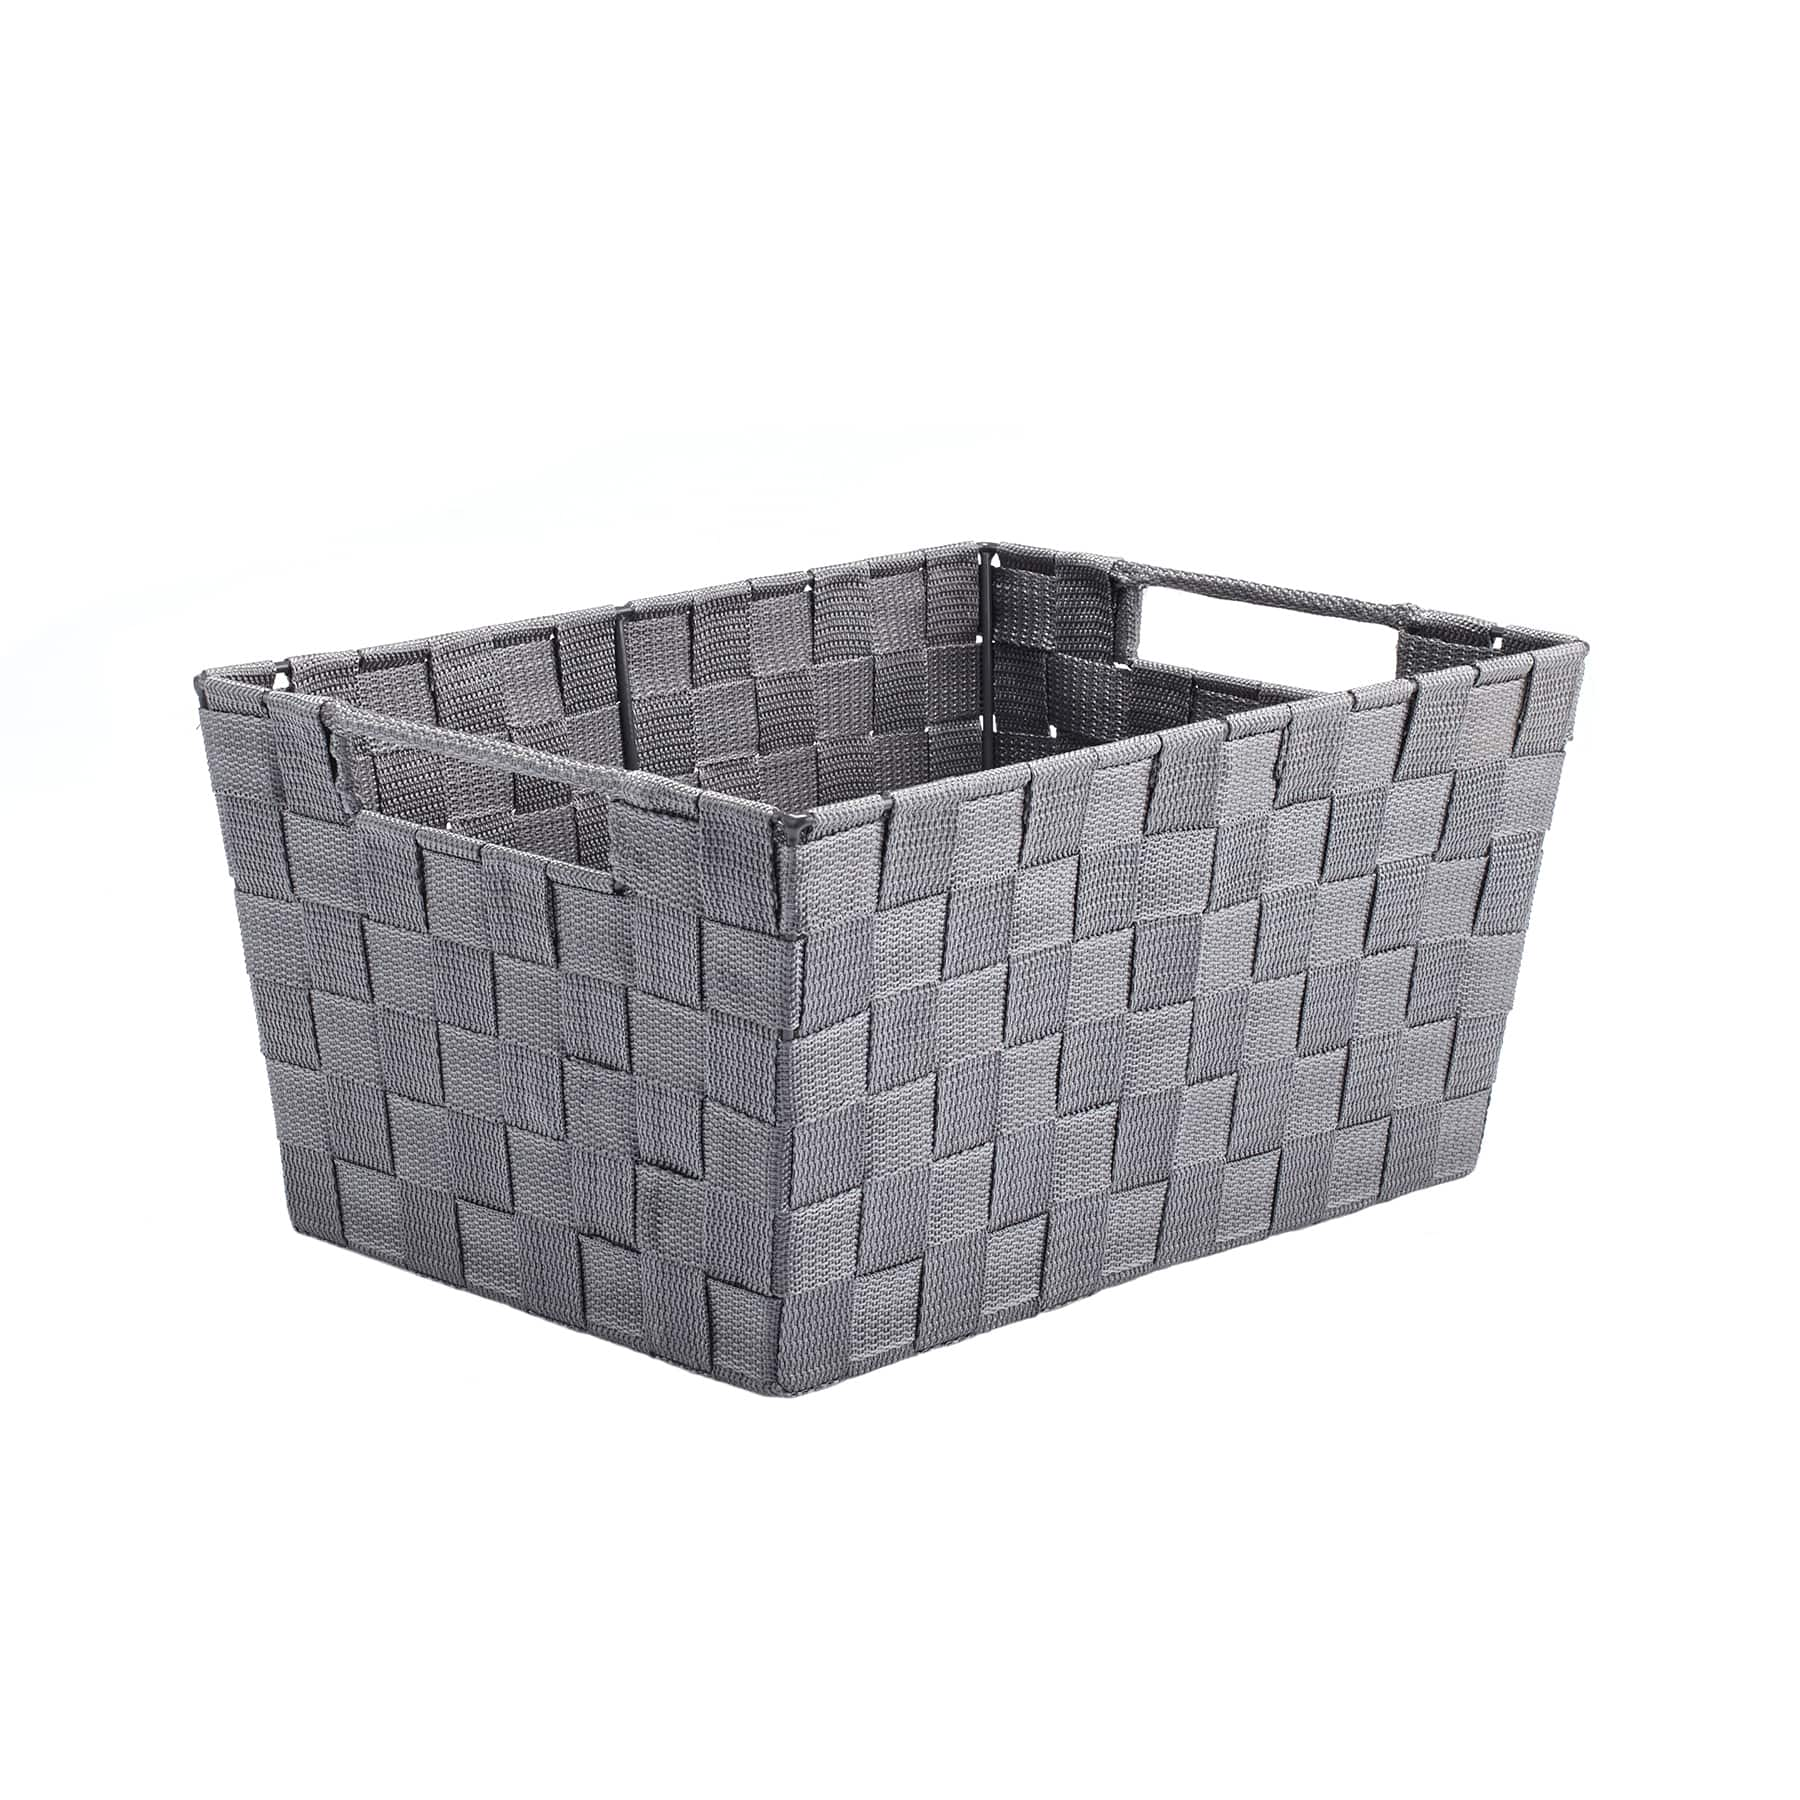 Gray Nylon Tapered Storage Basket With Handle Cutouts By Ashland®